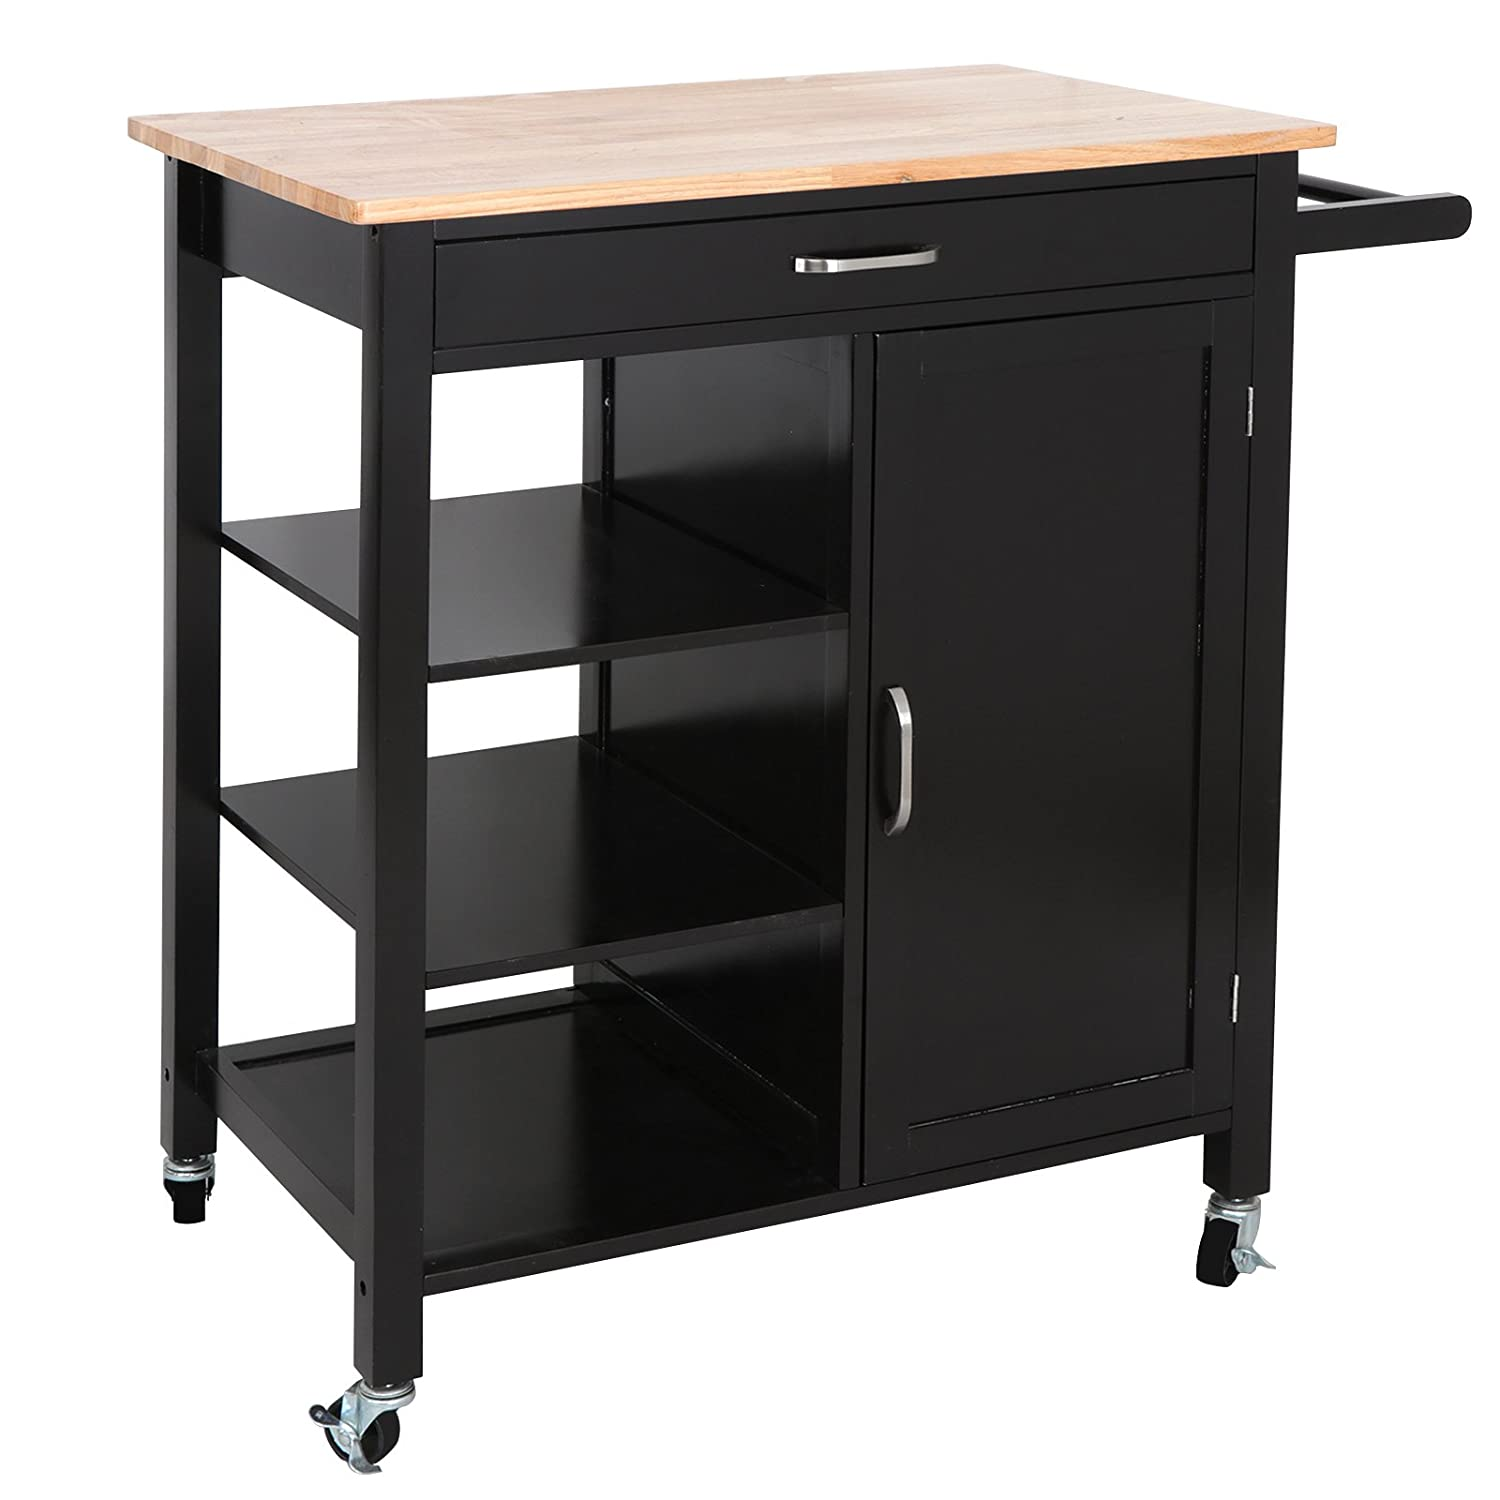 SUPER DEAL 4-Tier Utility Rolling Kitchen Storage Cart Kitchen Trolley Serving Cart w/Rubberwood Butcher Block Work Surface, Cabinet, Towel Bar, Drawer and Shelves